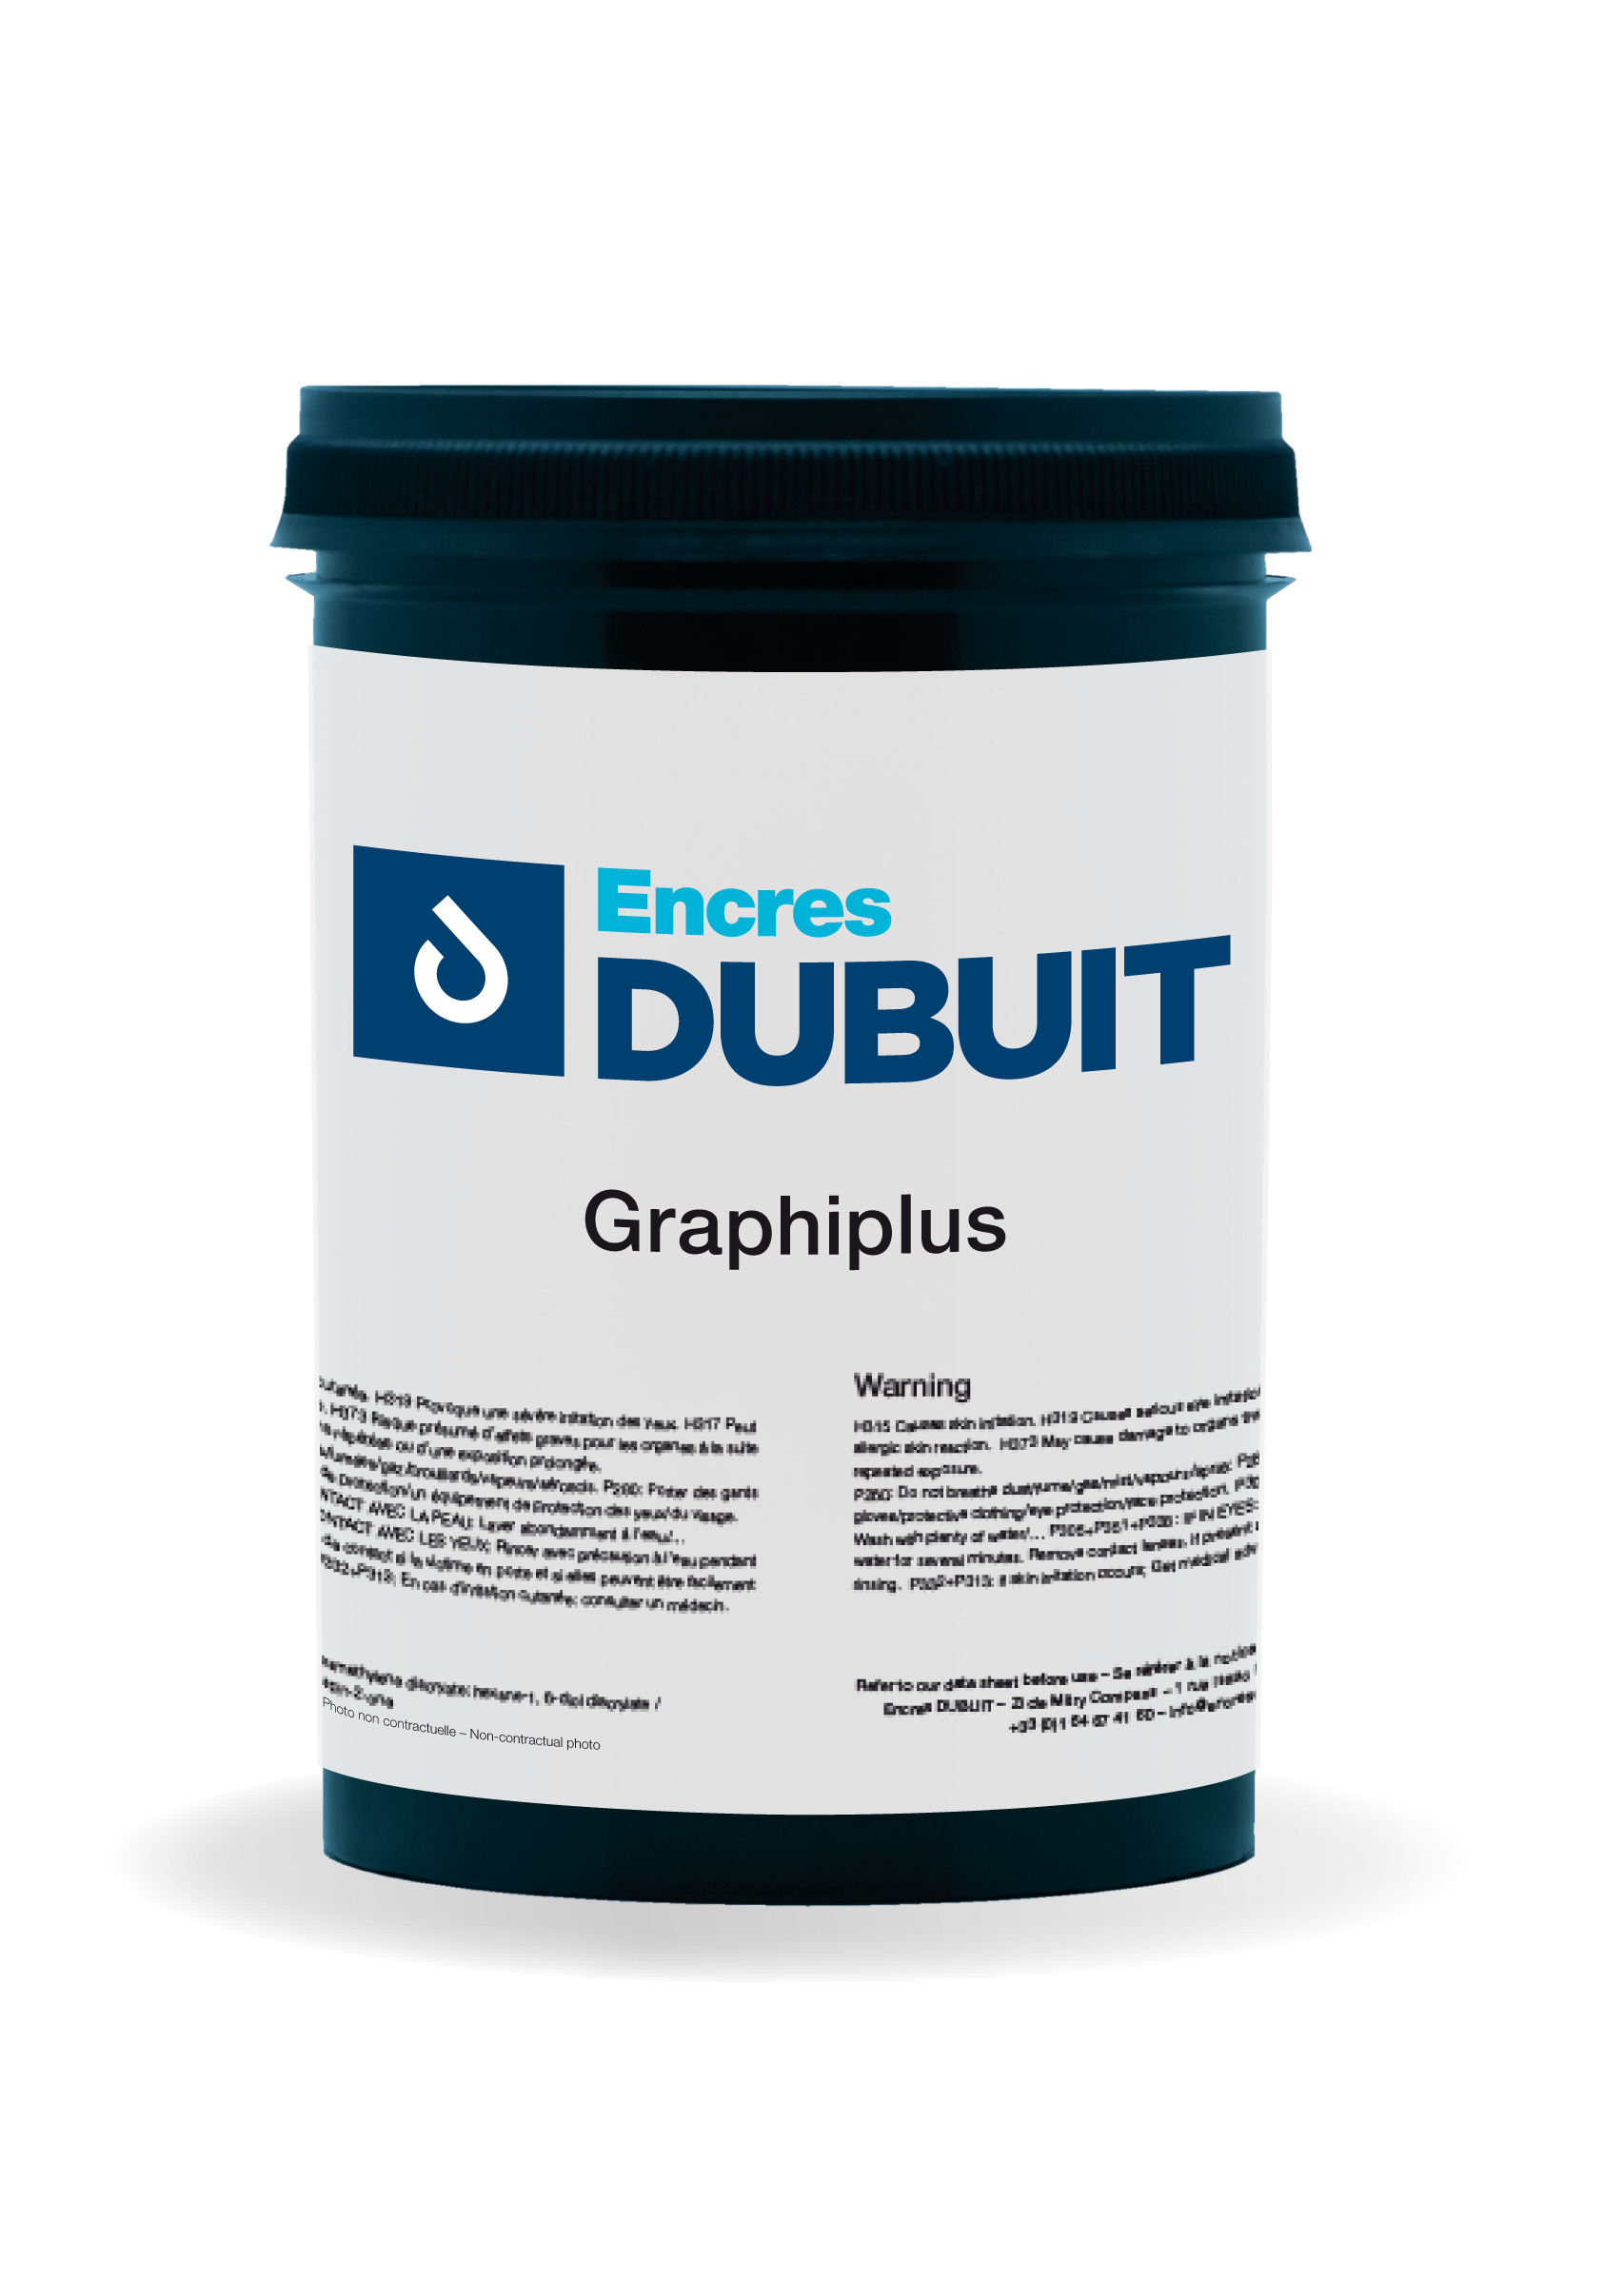 Serie Graphiplus Encres DUBUIT UV Screen Printing Ink